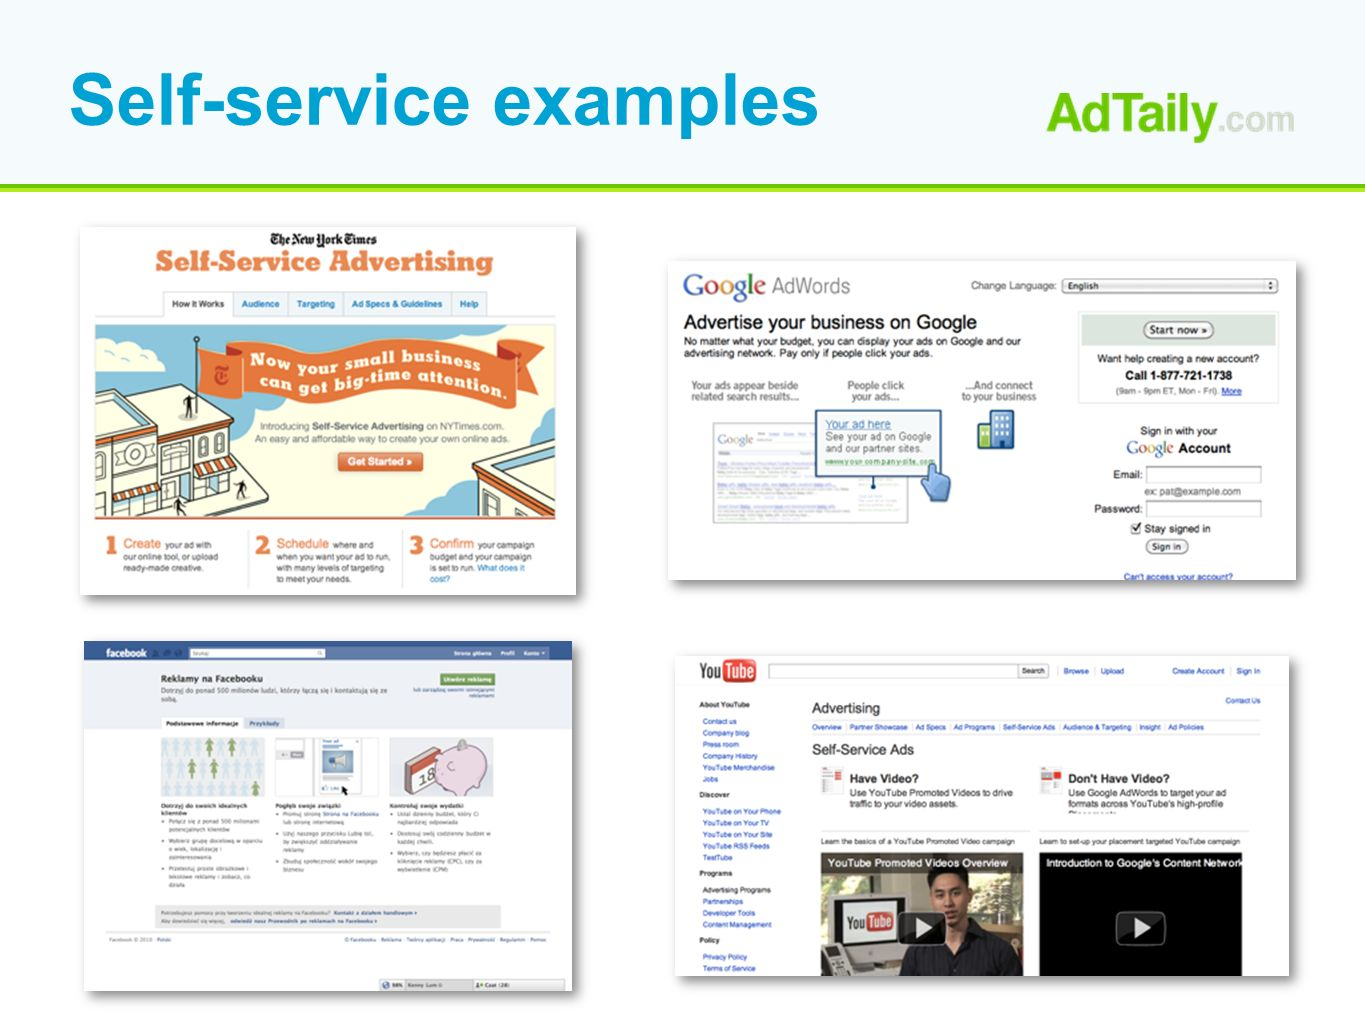 Self-service examples